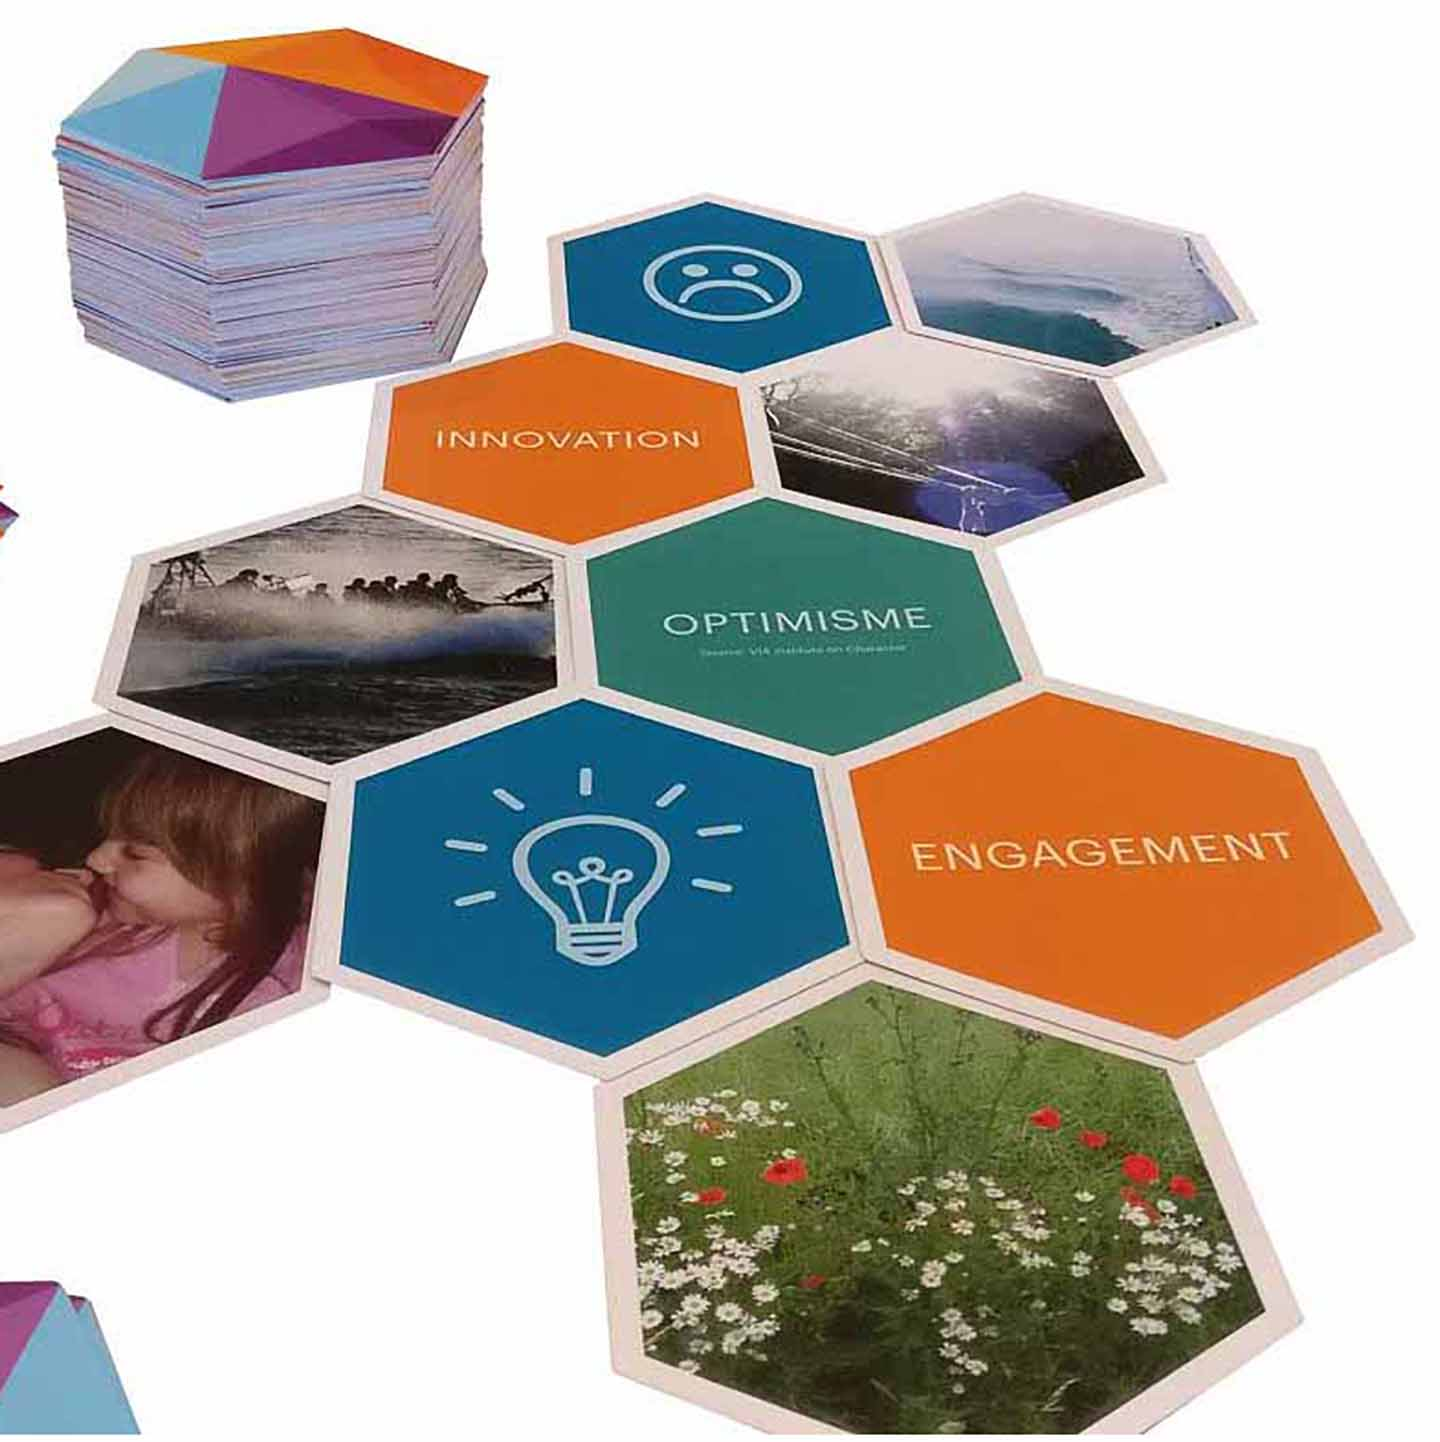 cartes innovation optimisme et engagement